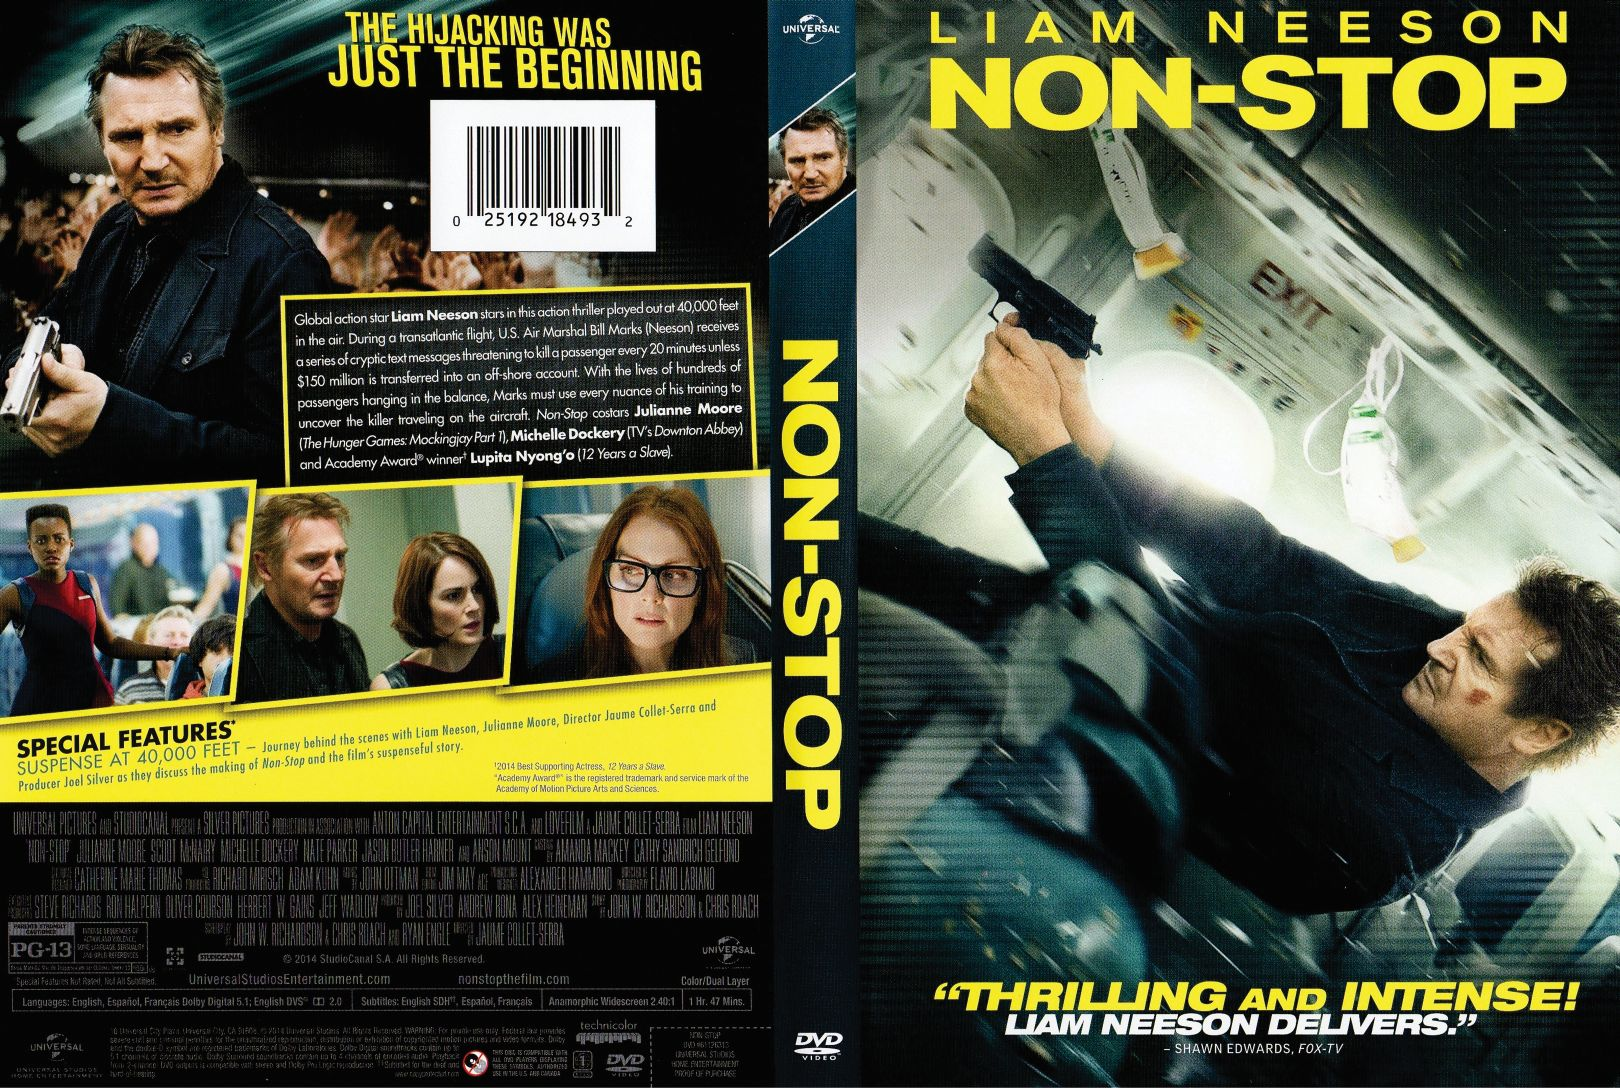 Non Stop 2014 R1 Front Dvd Covers Cover Century Over 500 000 Album Art Covers For Free